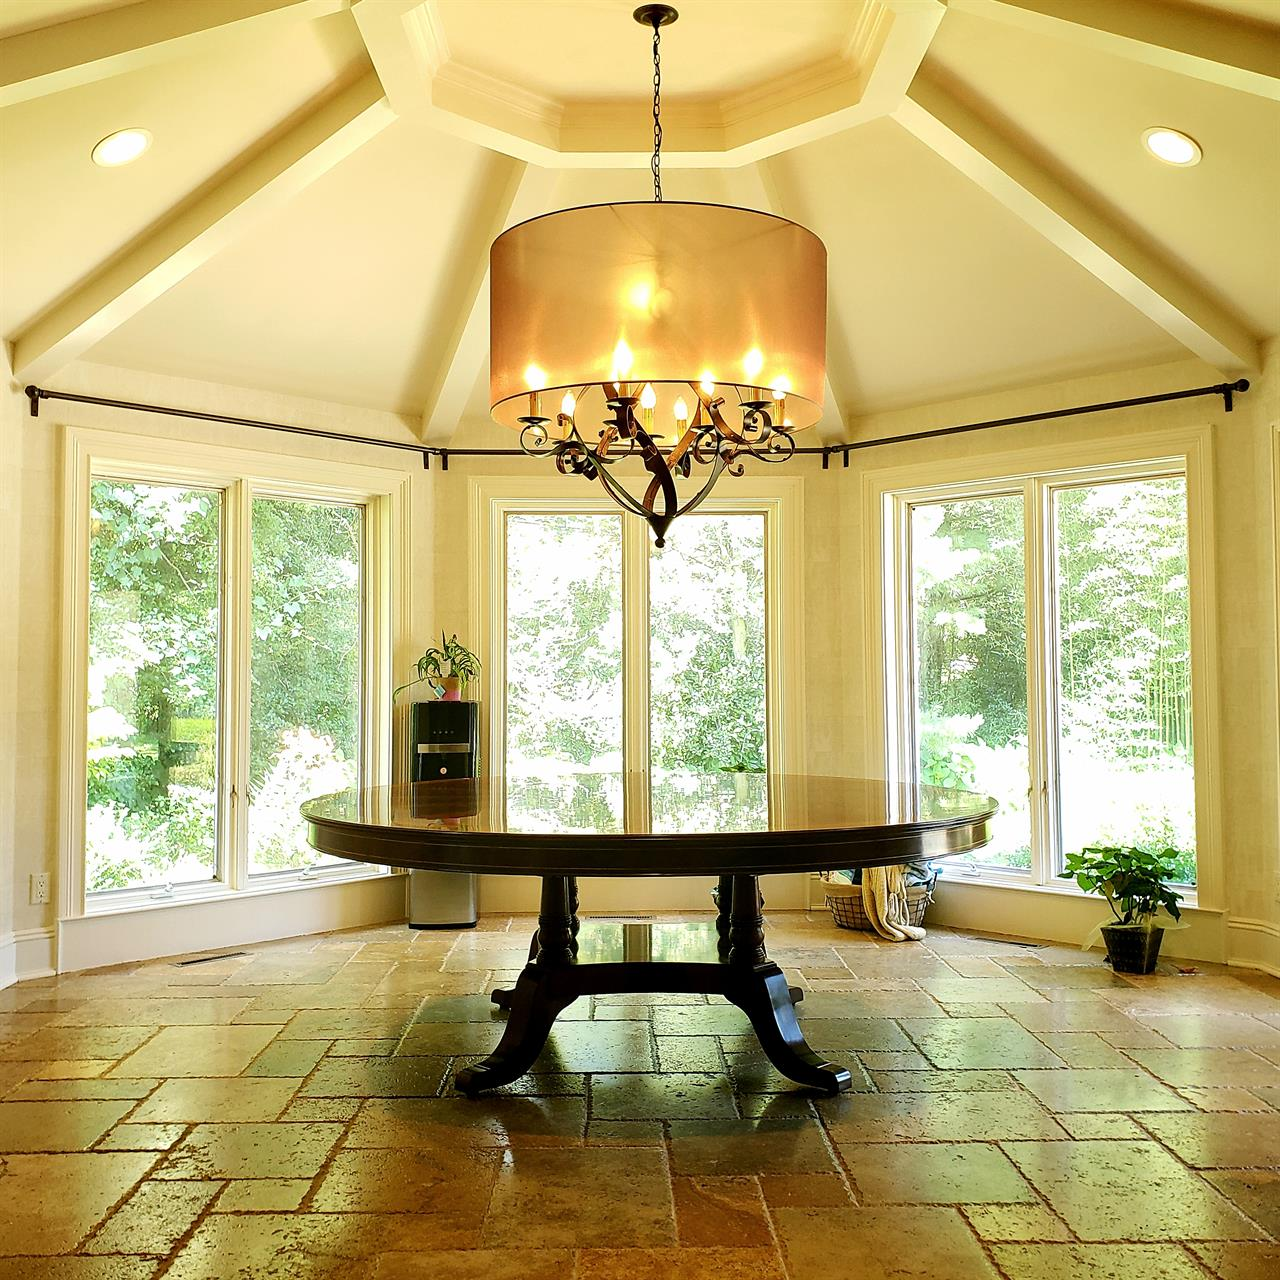 Round Dining Table Seats 10: Extra Large Round DIning Table